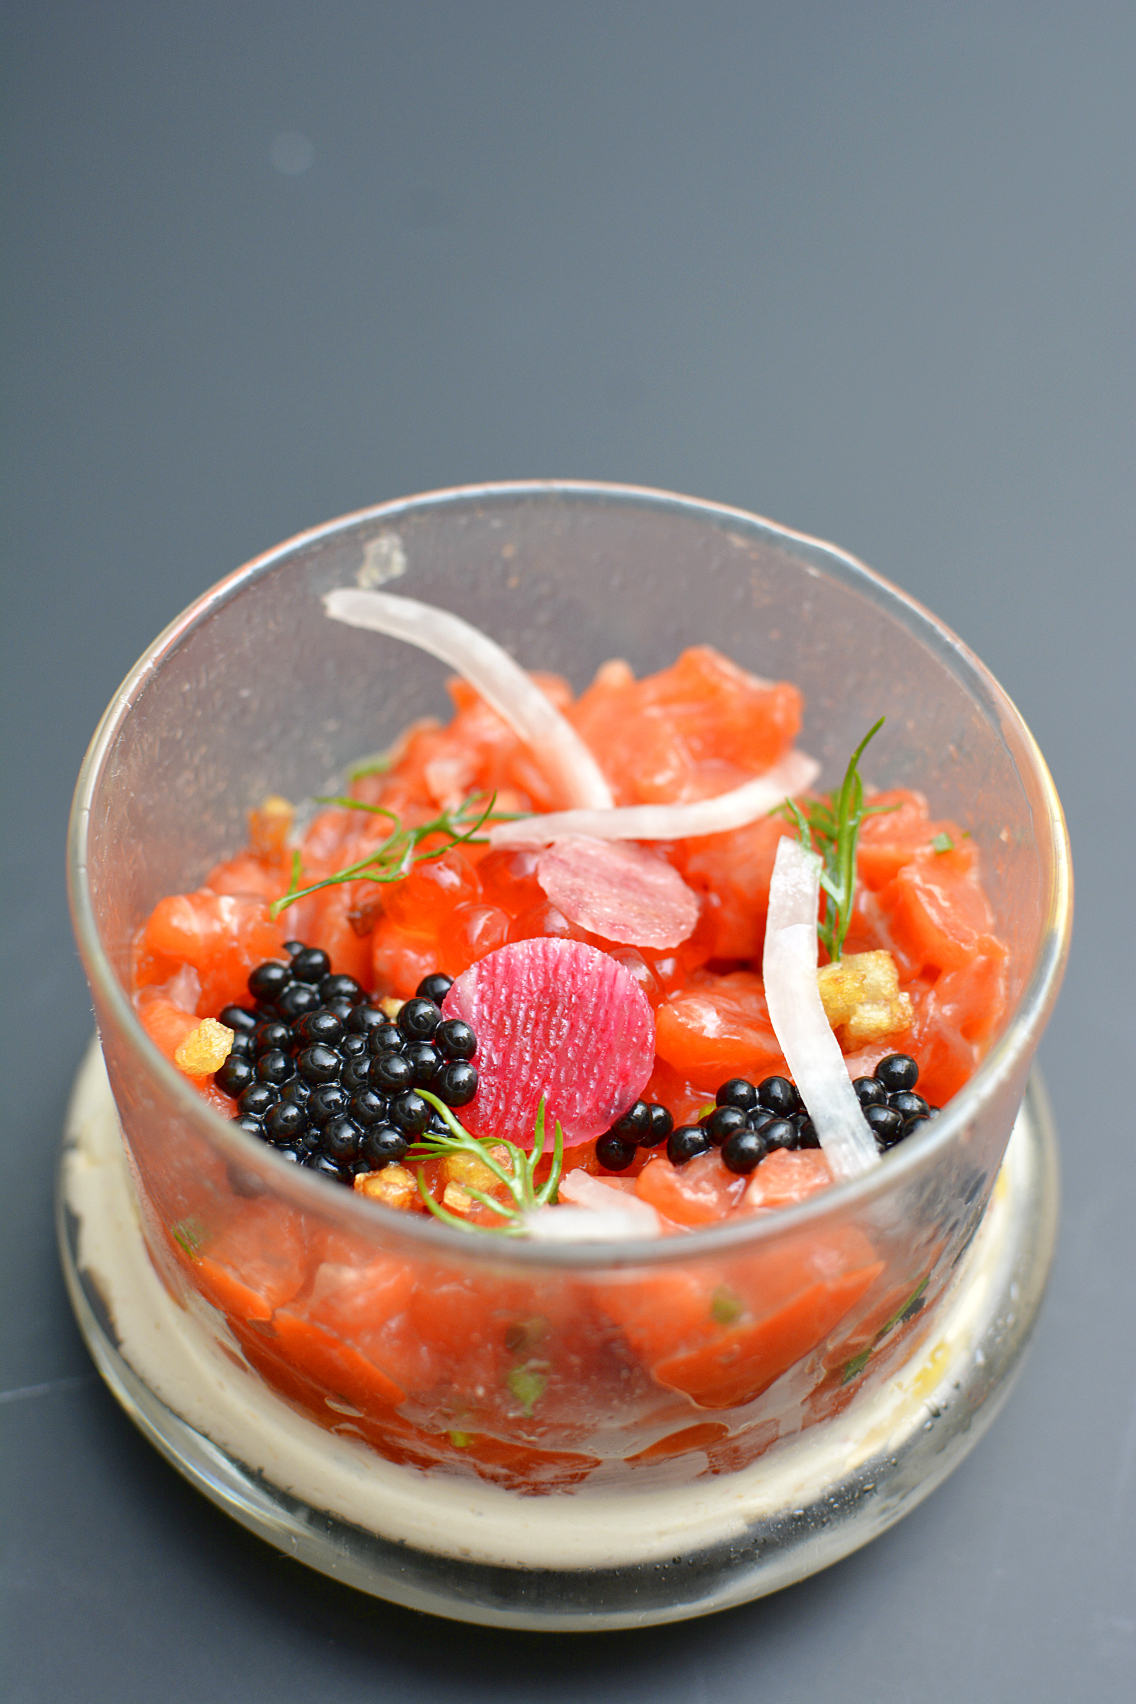 Sofitel Chicago Smoked Salmon Tartare 8